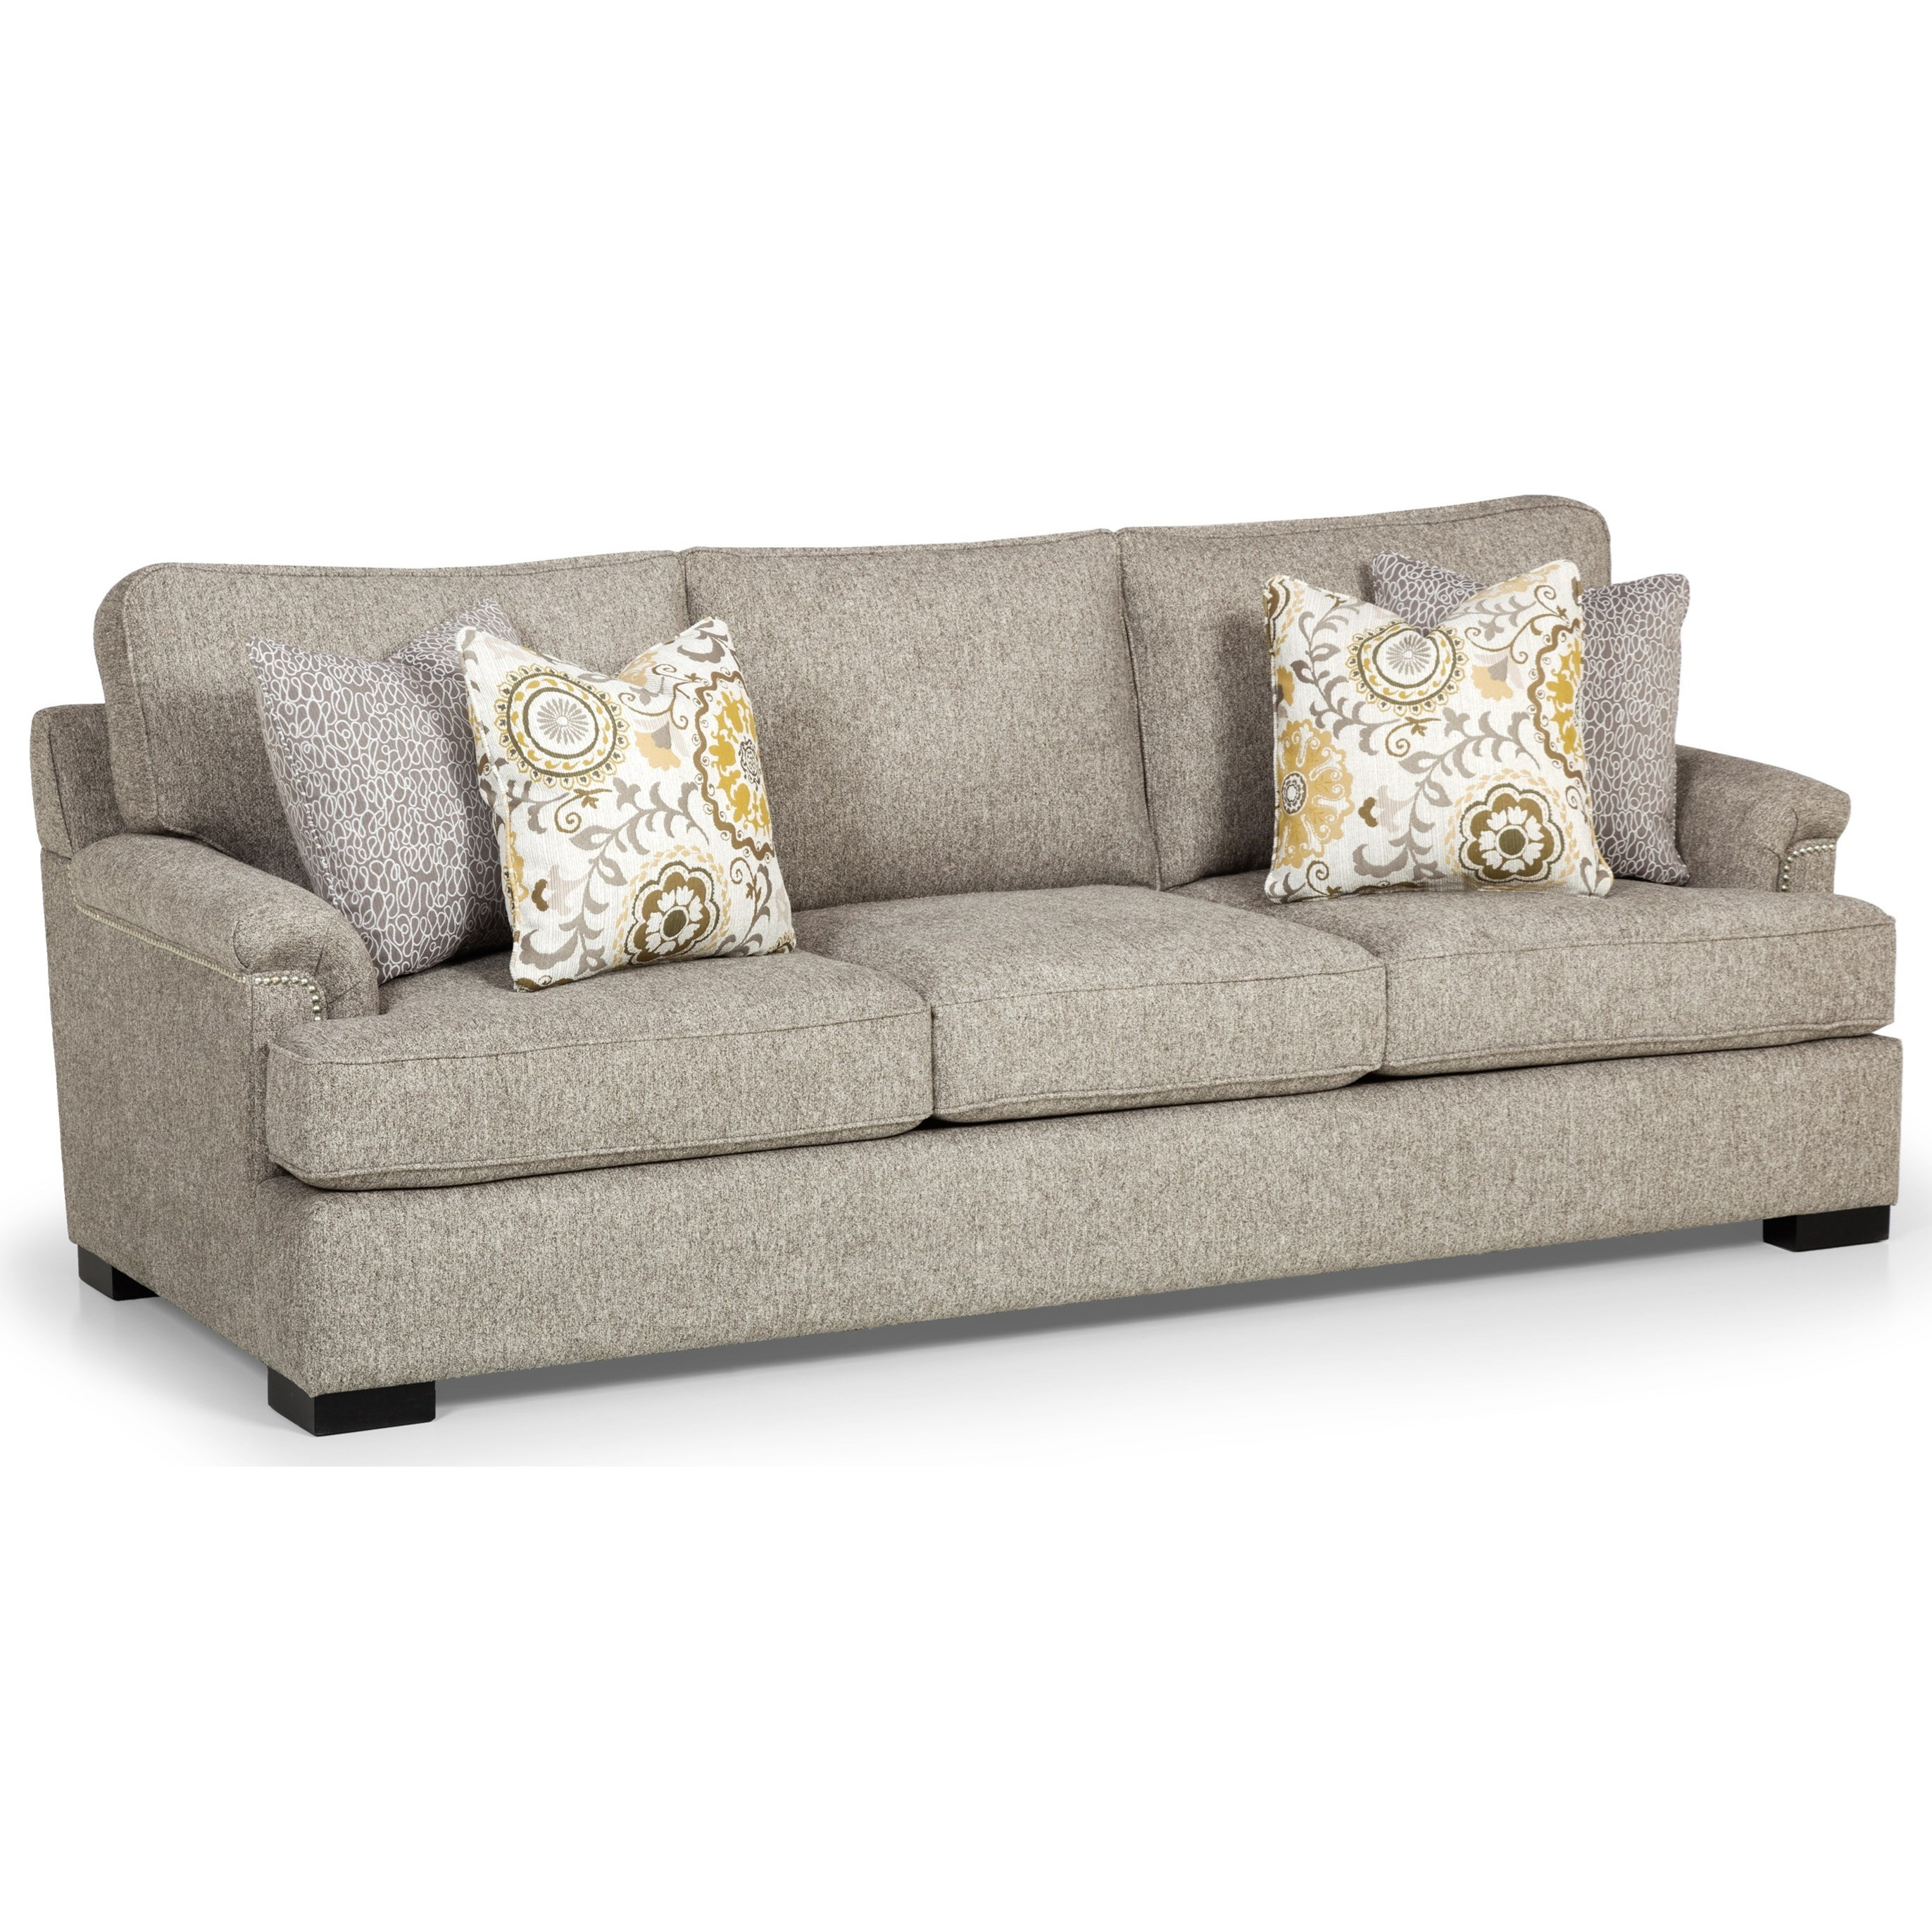 485 Sofa by Stanton at Wilson's Furniture